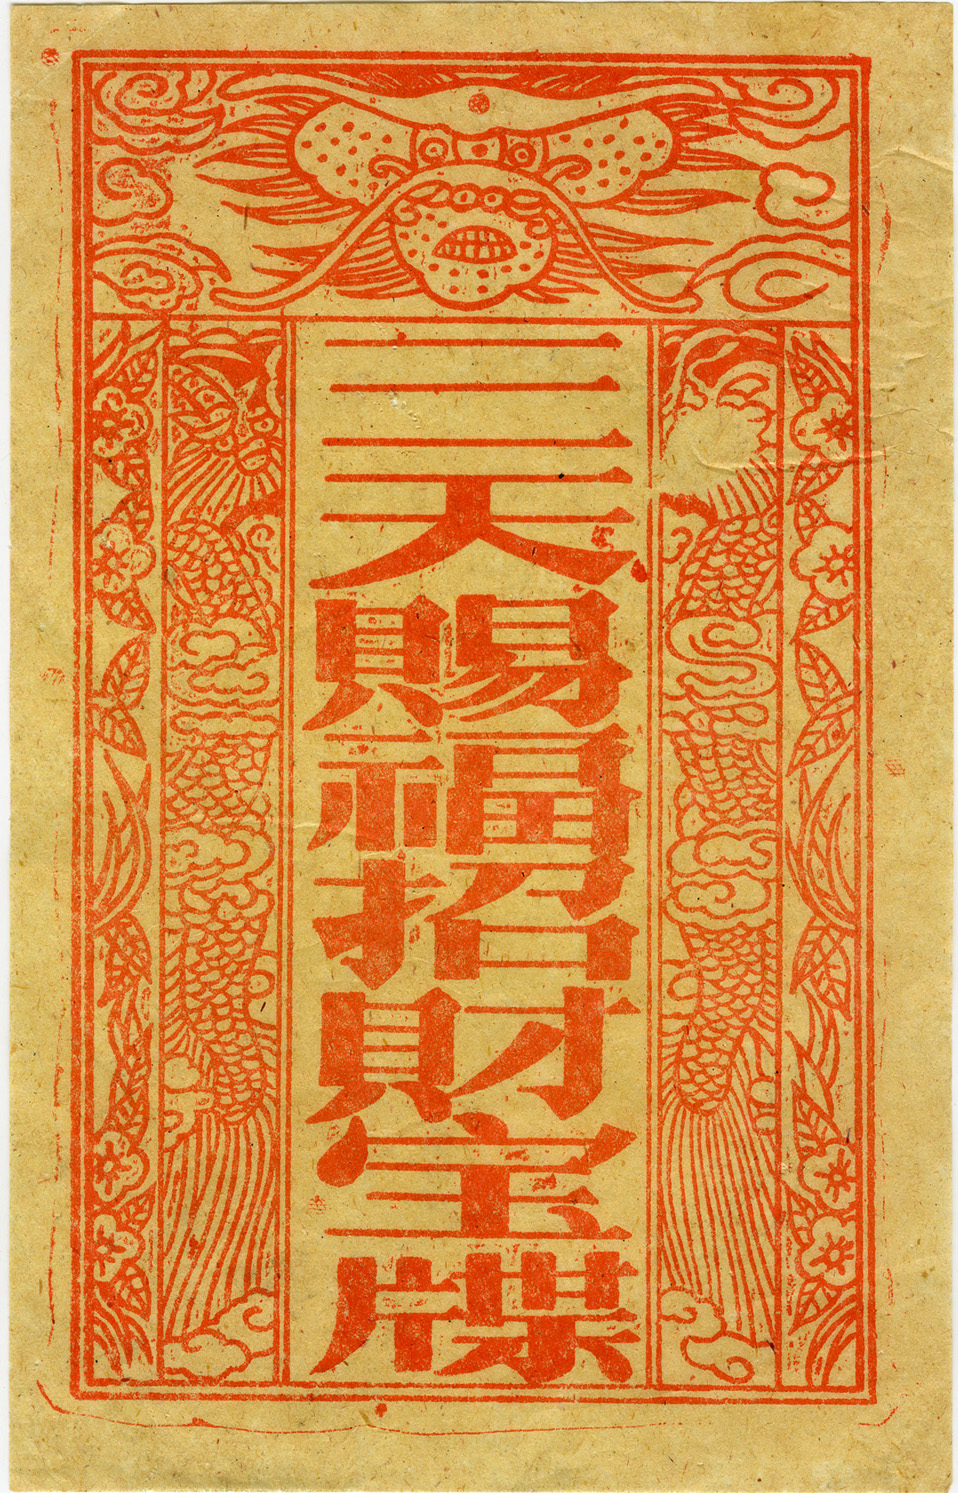 Image of Chinese funeral money